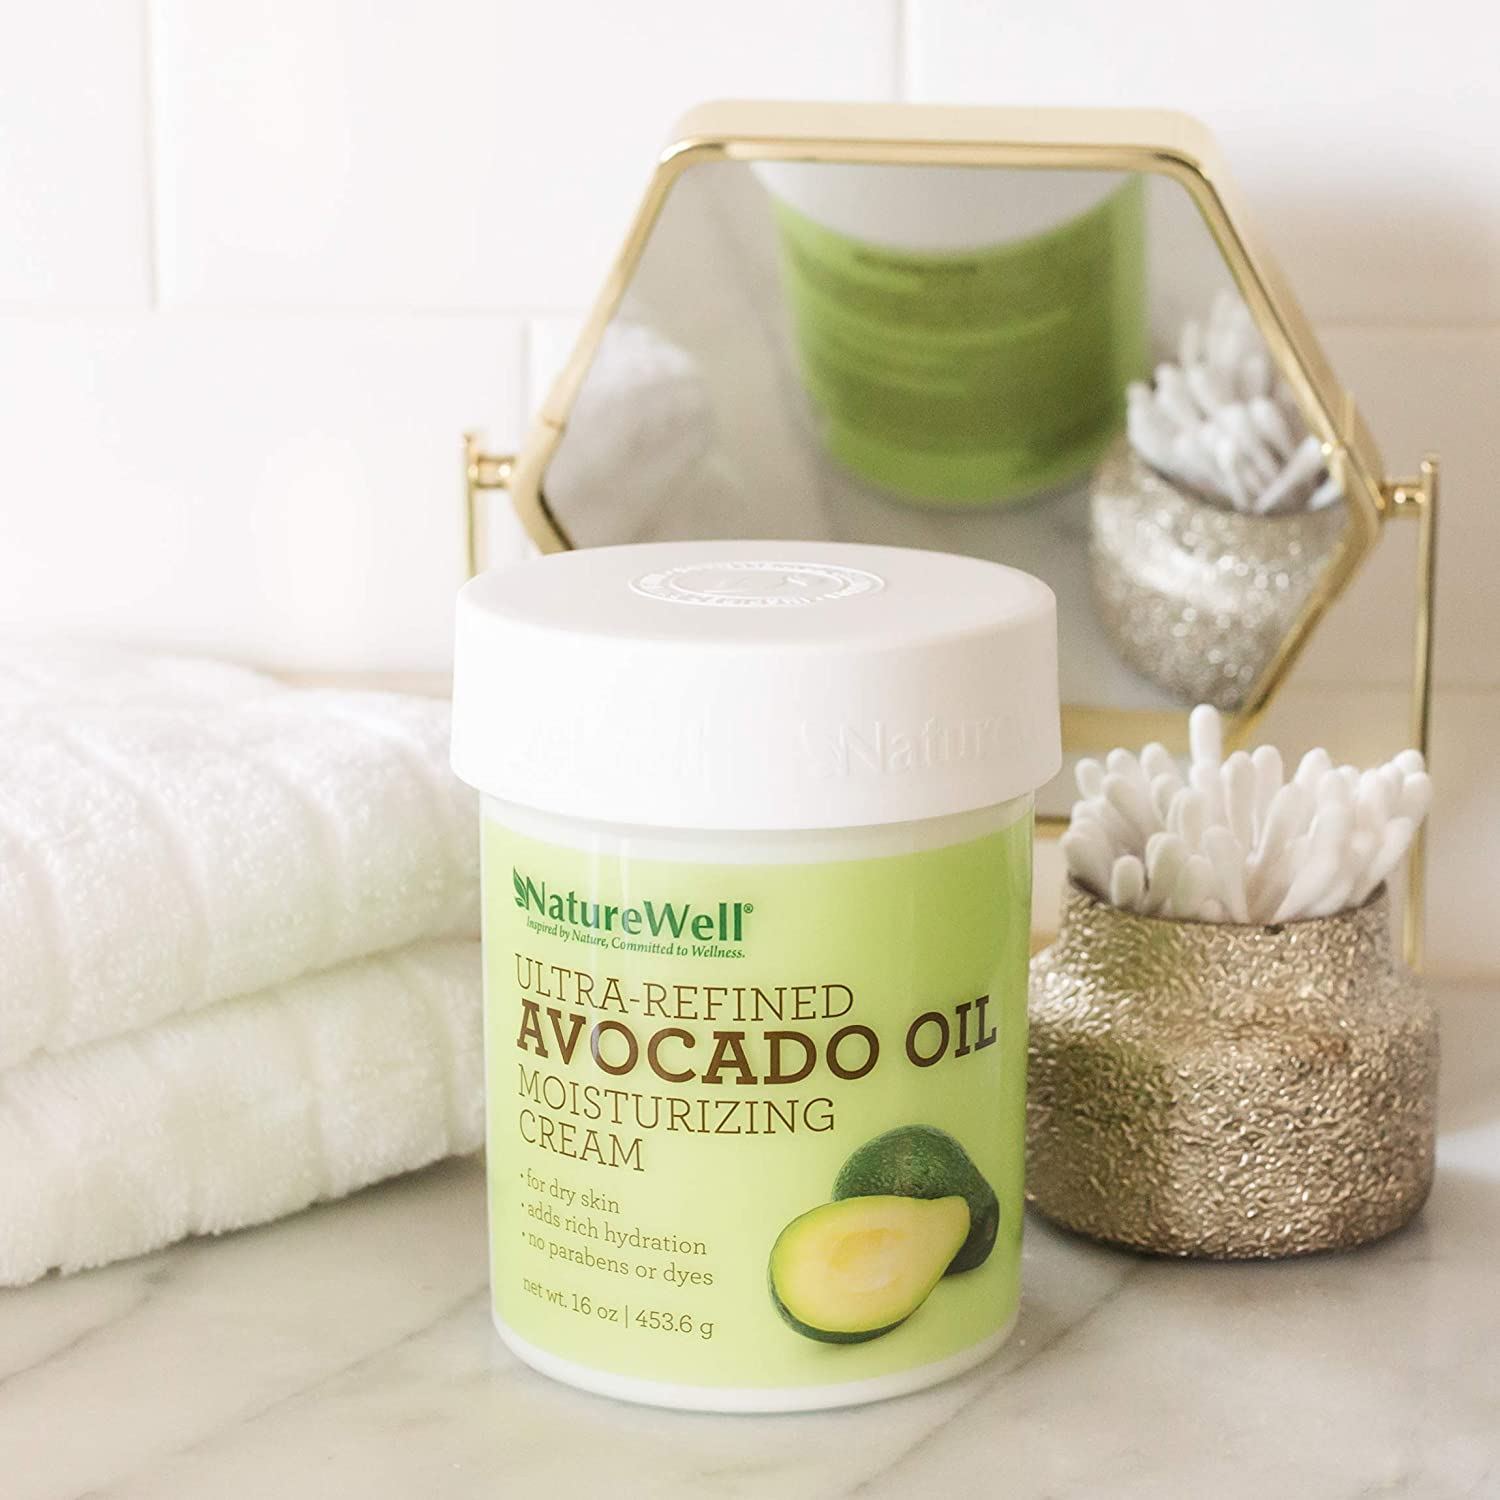 Avocado Oil Antioxidant-Rich, Paraben and Dye Free, Moisturizing Cream for Face and Body, 16 oz.